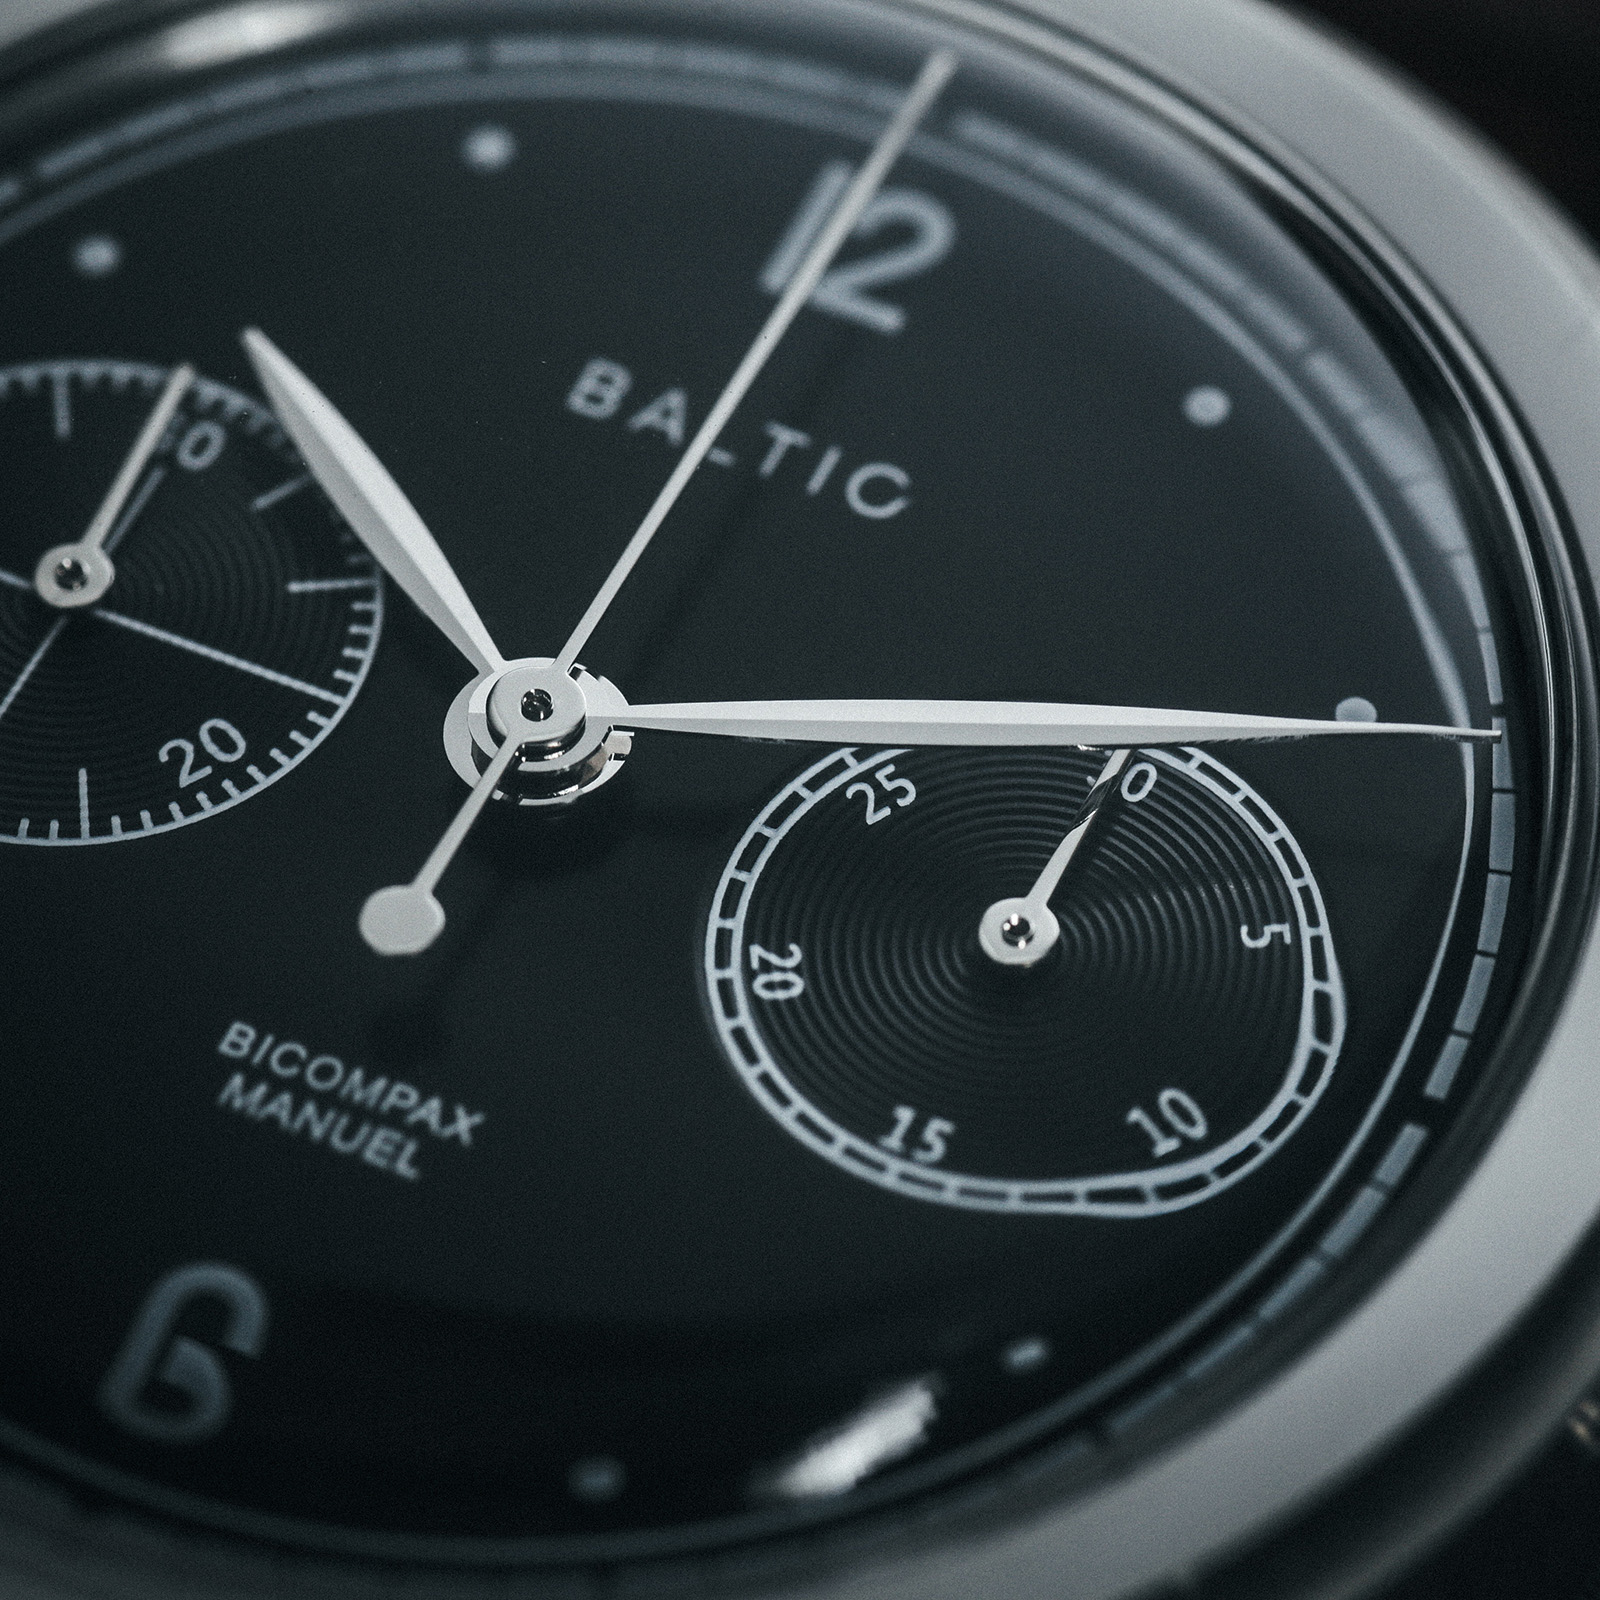 Baltic Watches BIMCOMPAX 001 Black dial